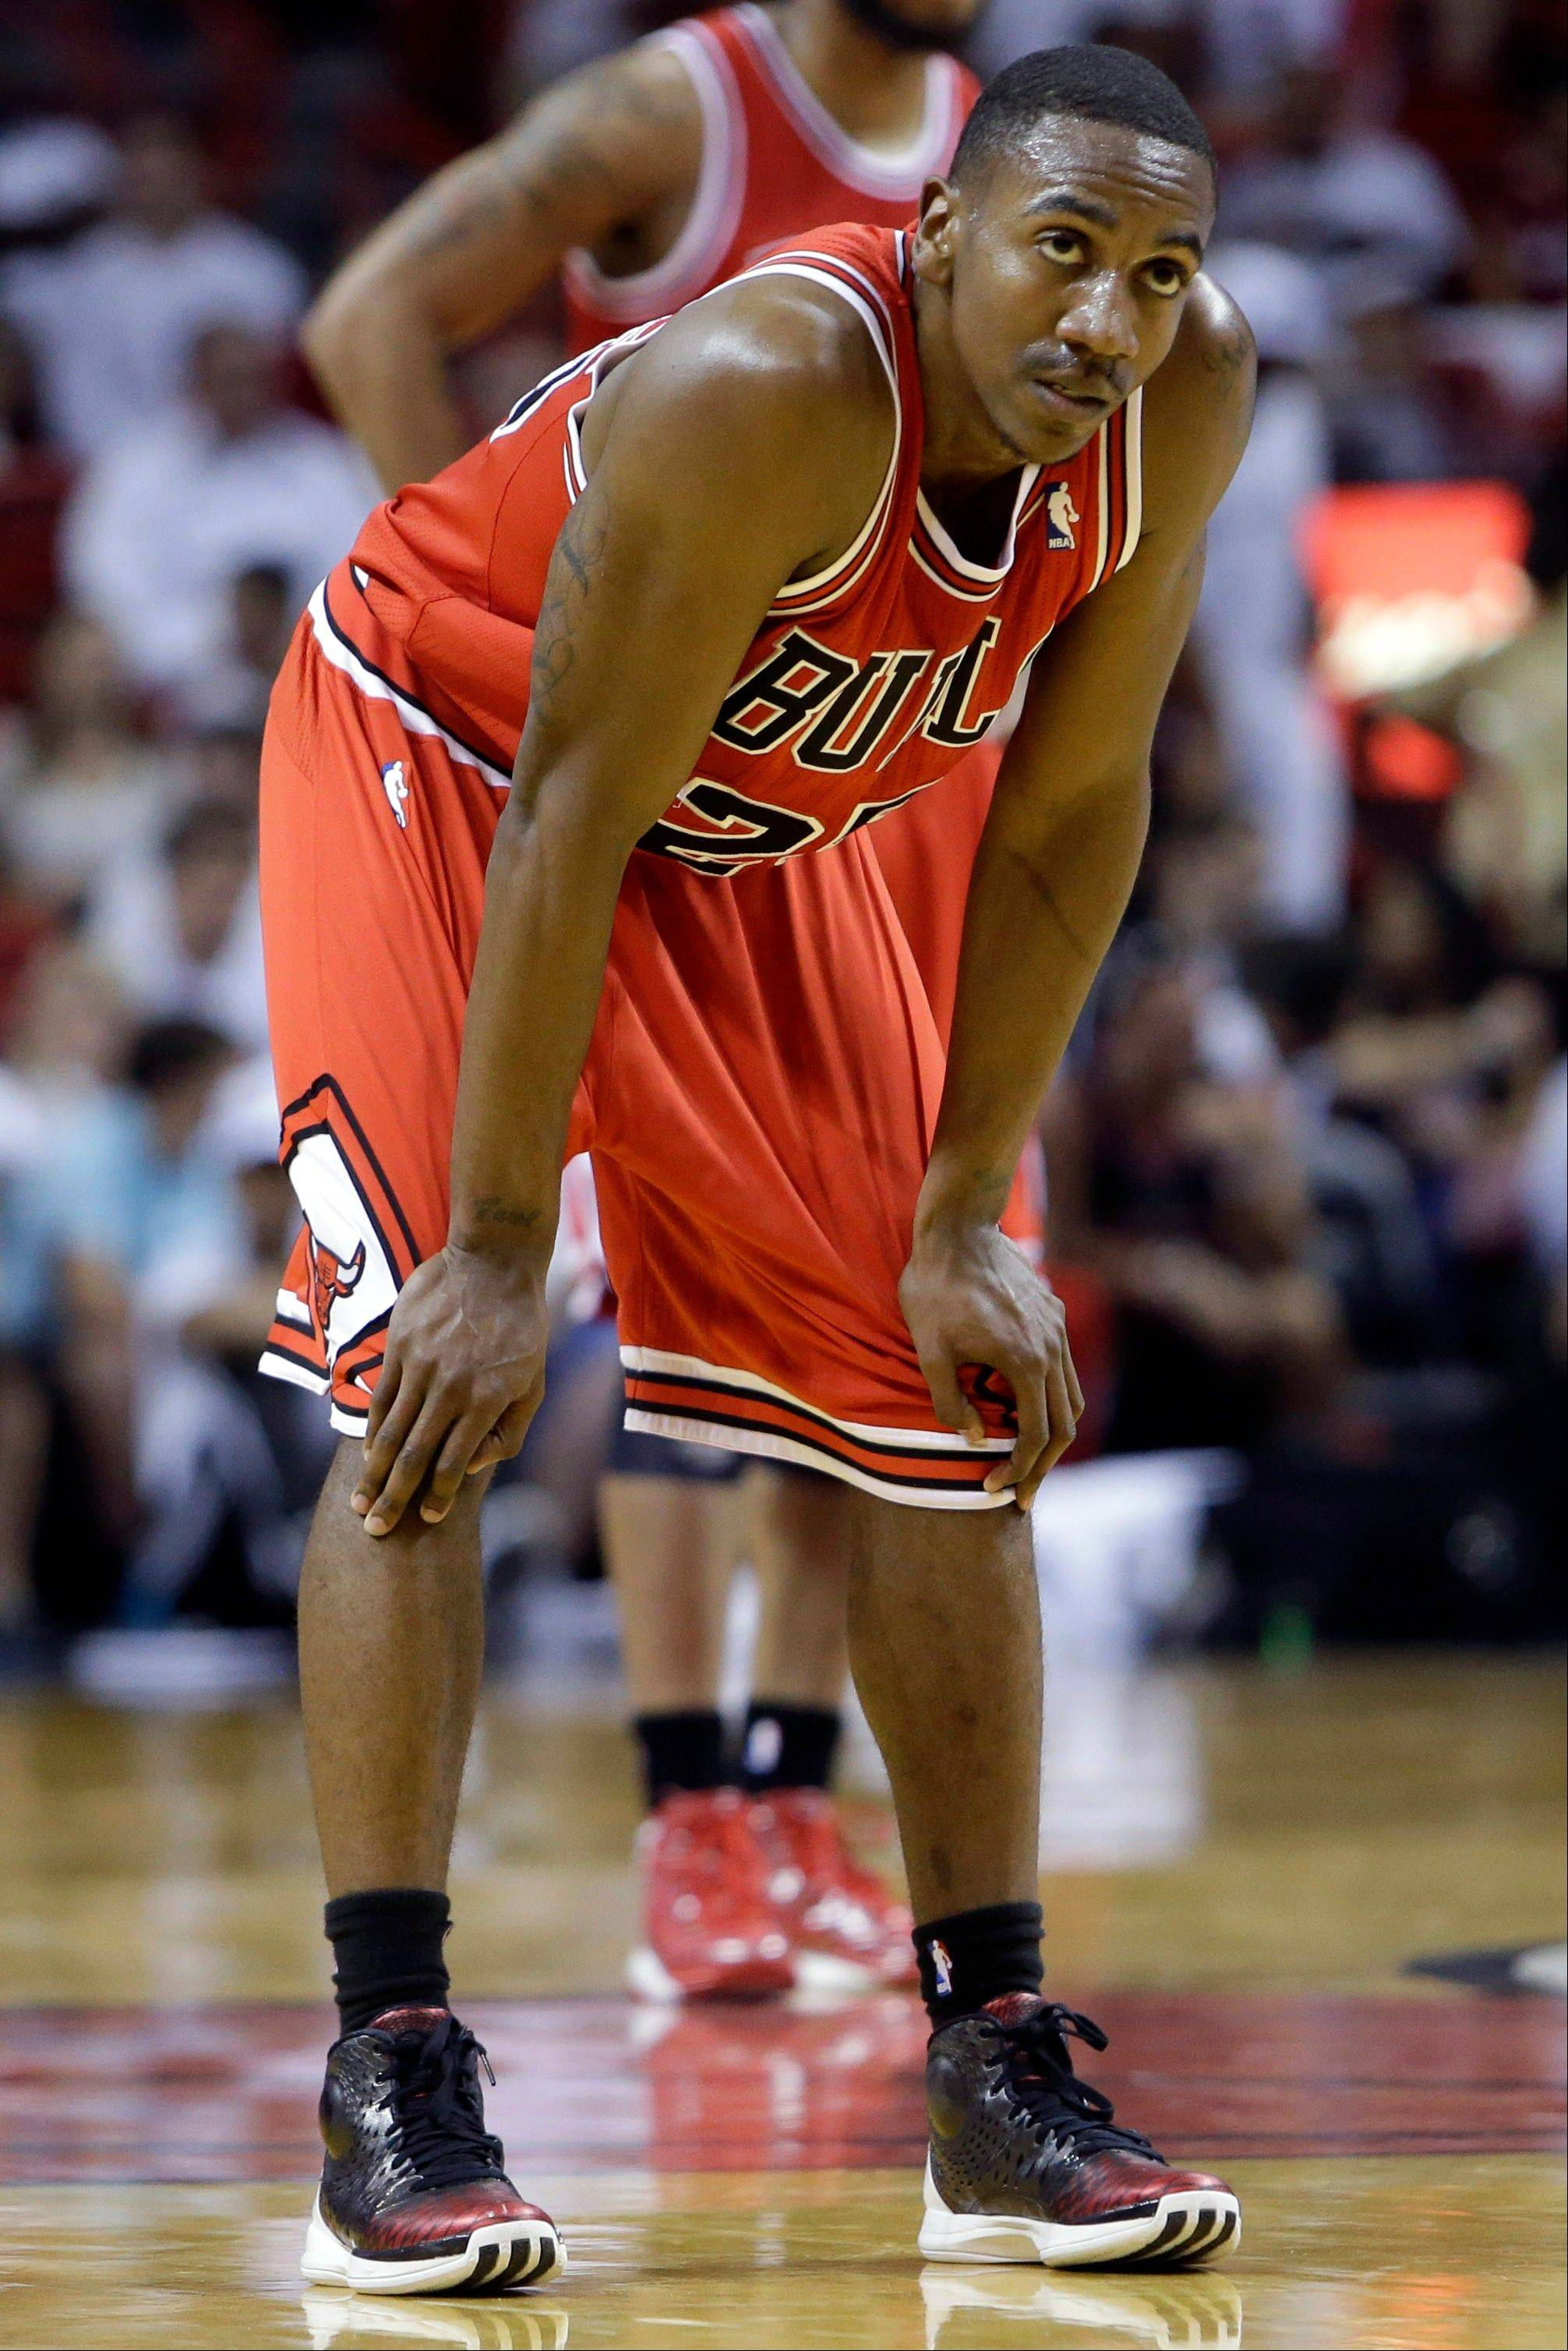 Chicago Bulls' Marquis Teague watches from the court in the second half of Game 2 of their NBA basketball playoff series in the Eastern Conference semifinals against the Miami Heat, Wednesday, May 8, 2013, in Miami. The Heat won 115-78.